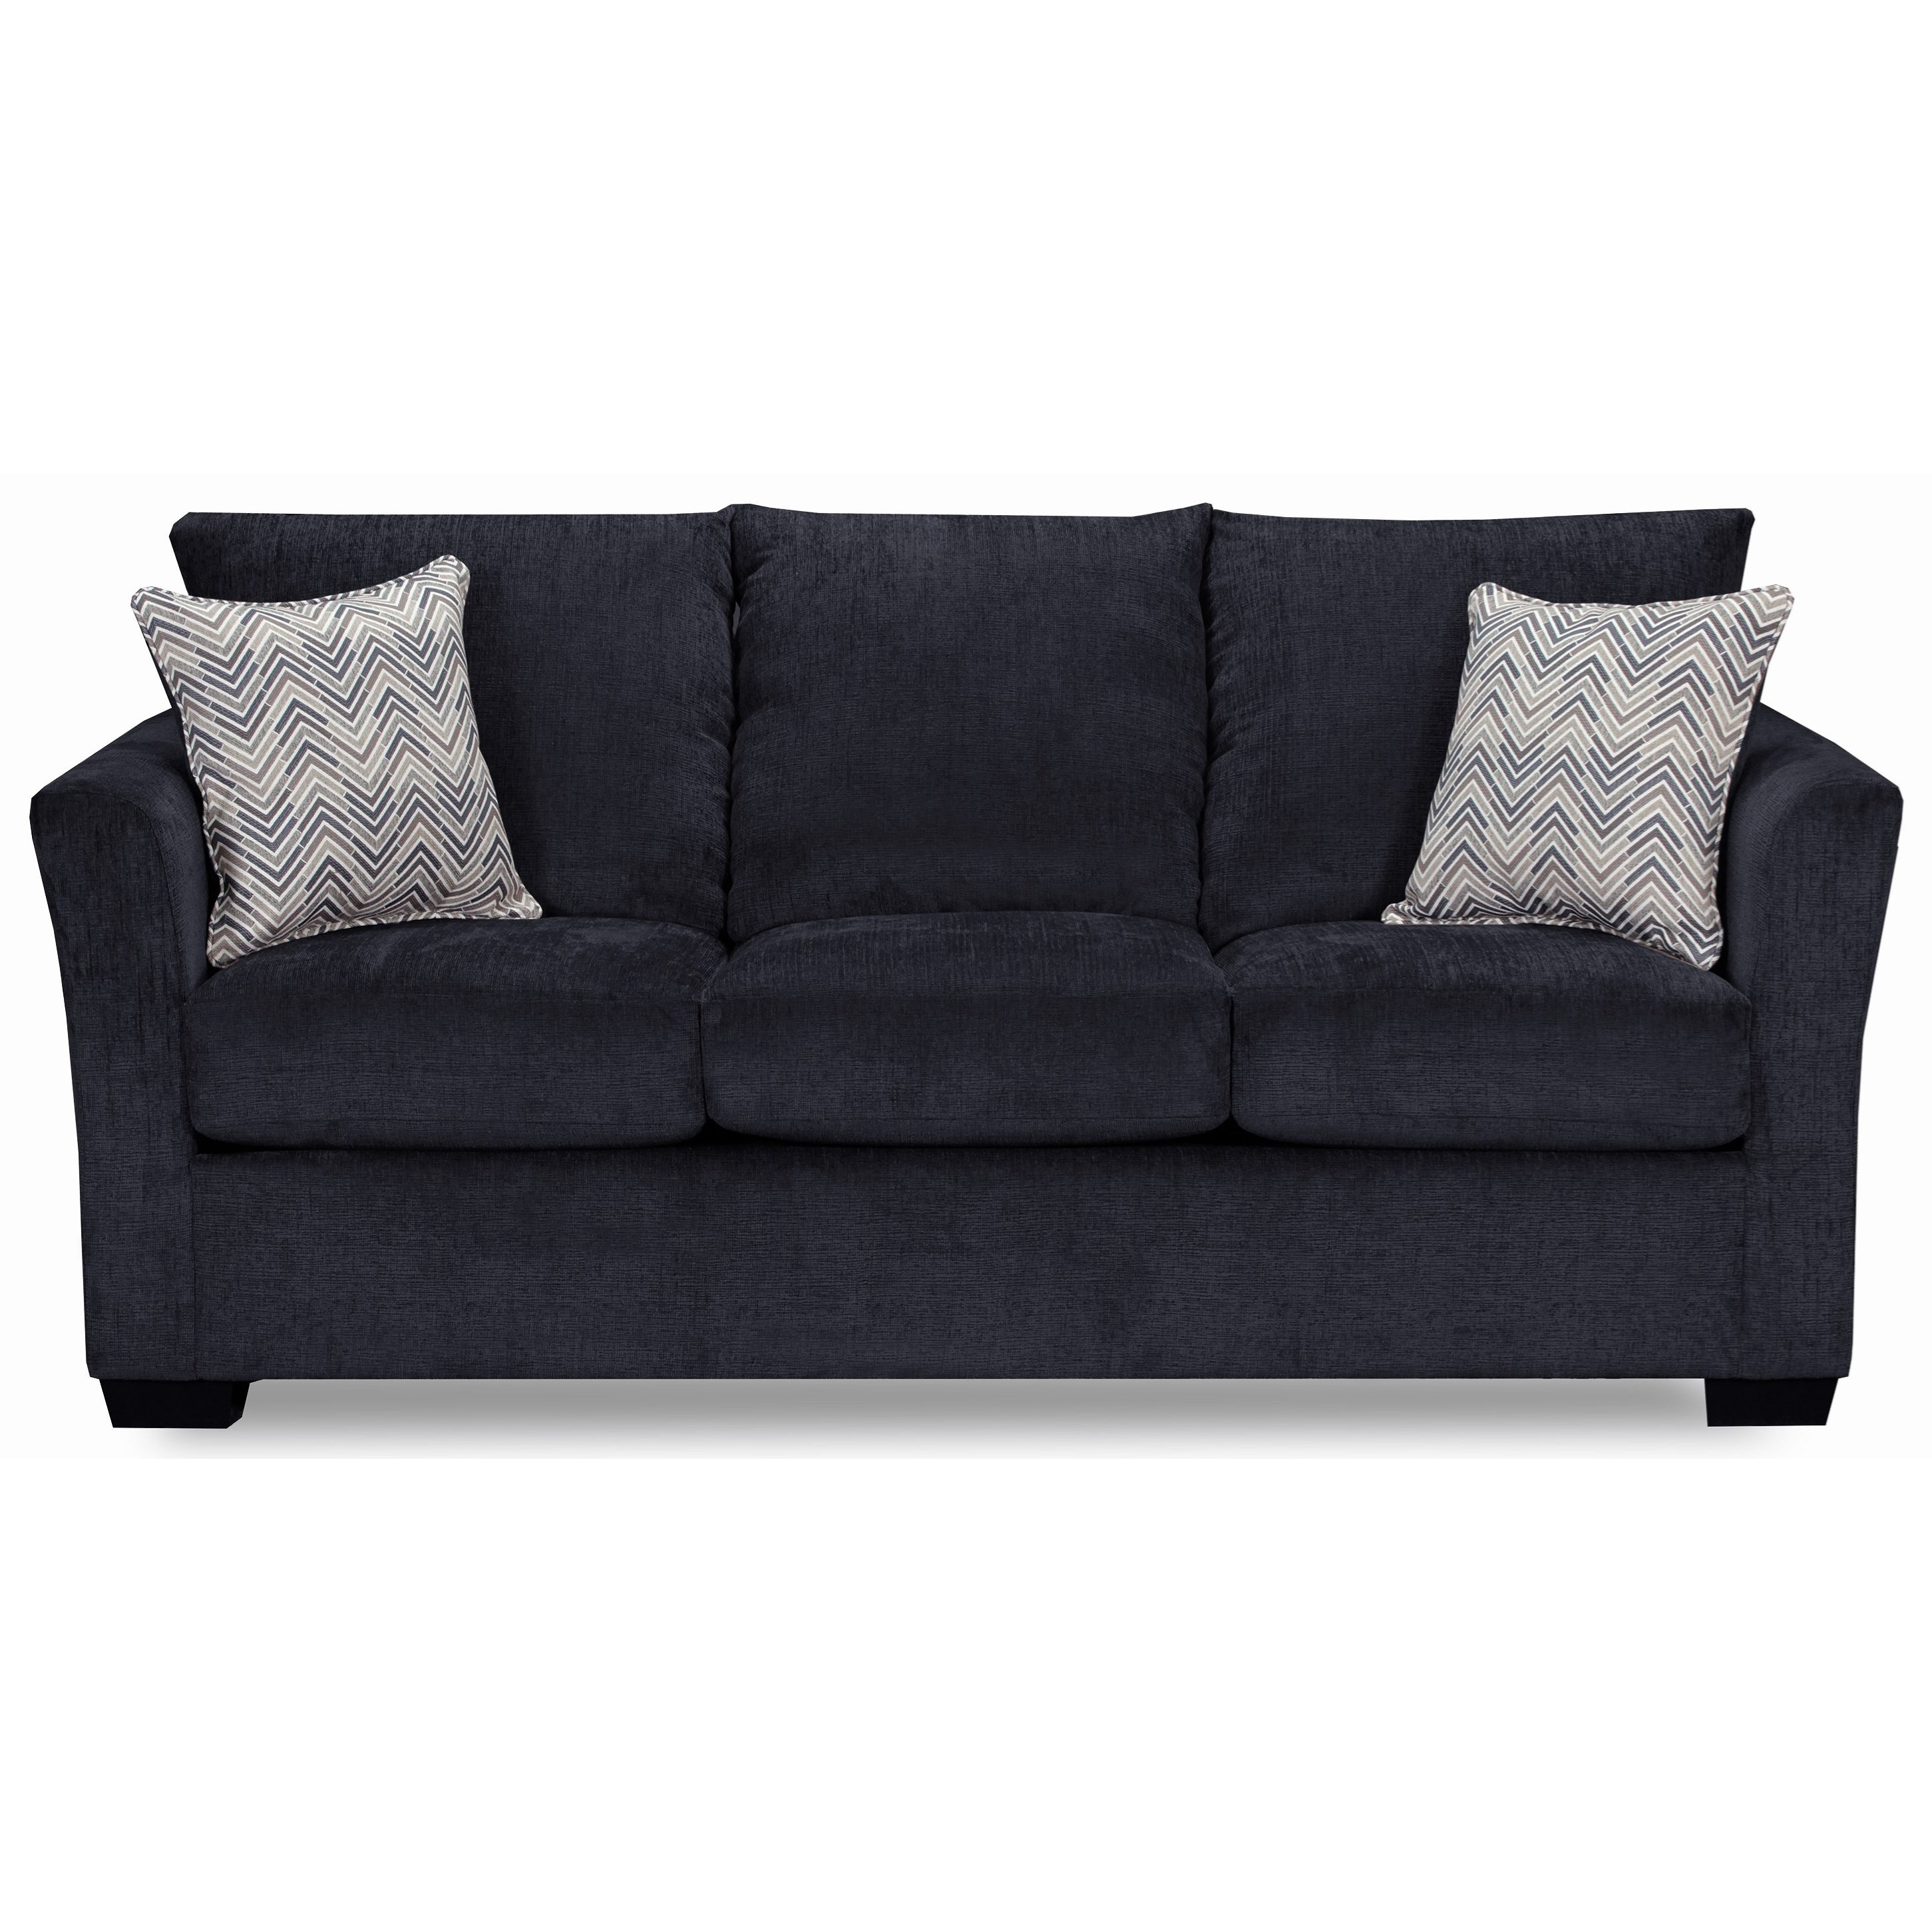 4206 Transitional Queen Sleeper Sofa by Lane at Powell's Furniture and Mattress